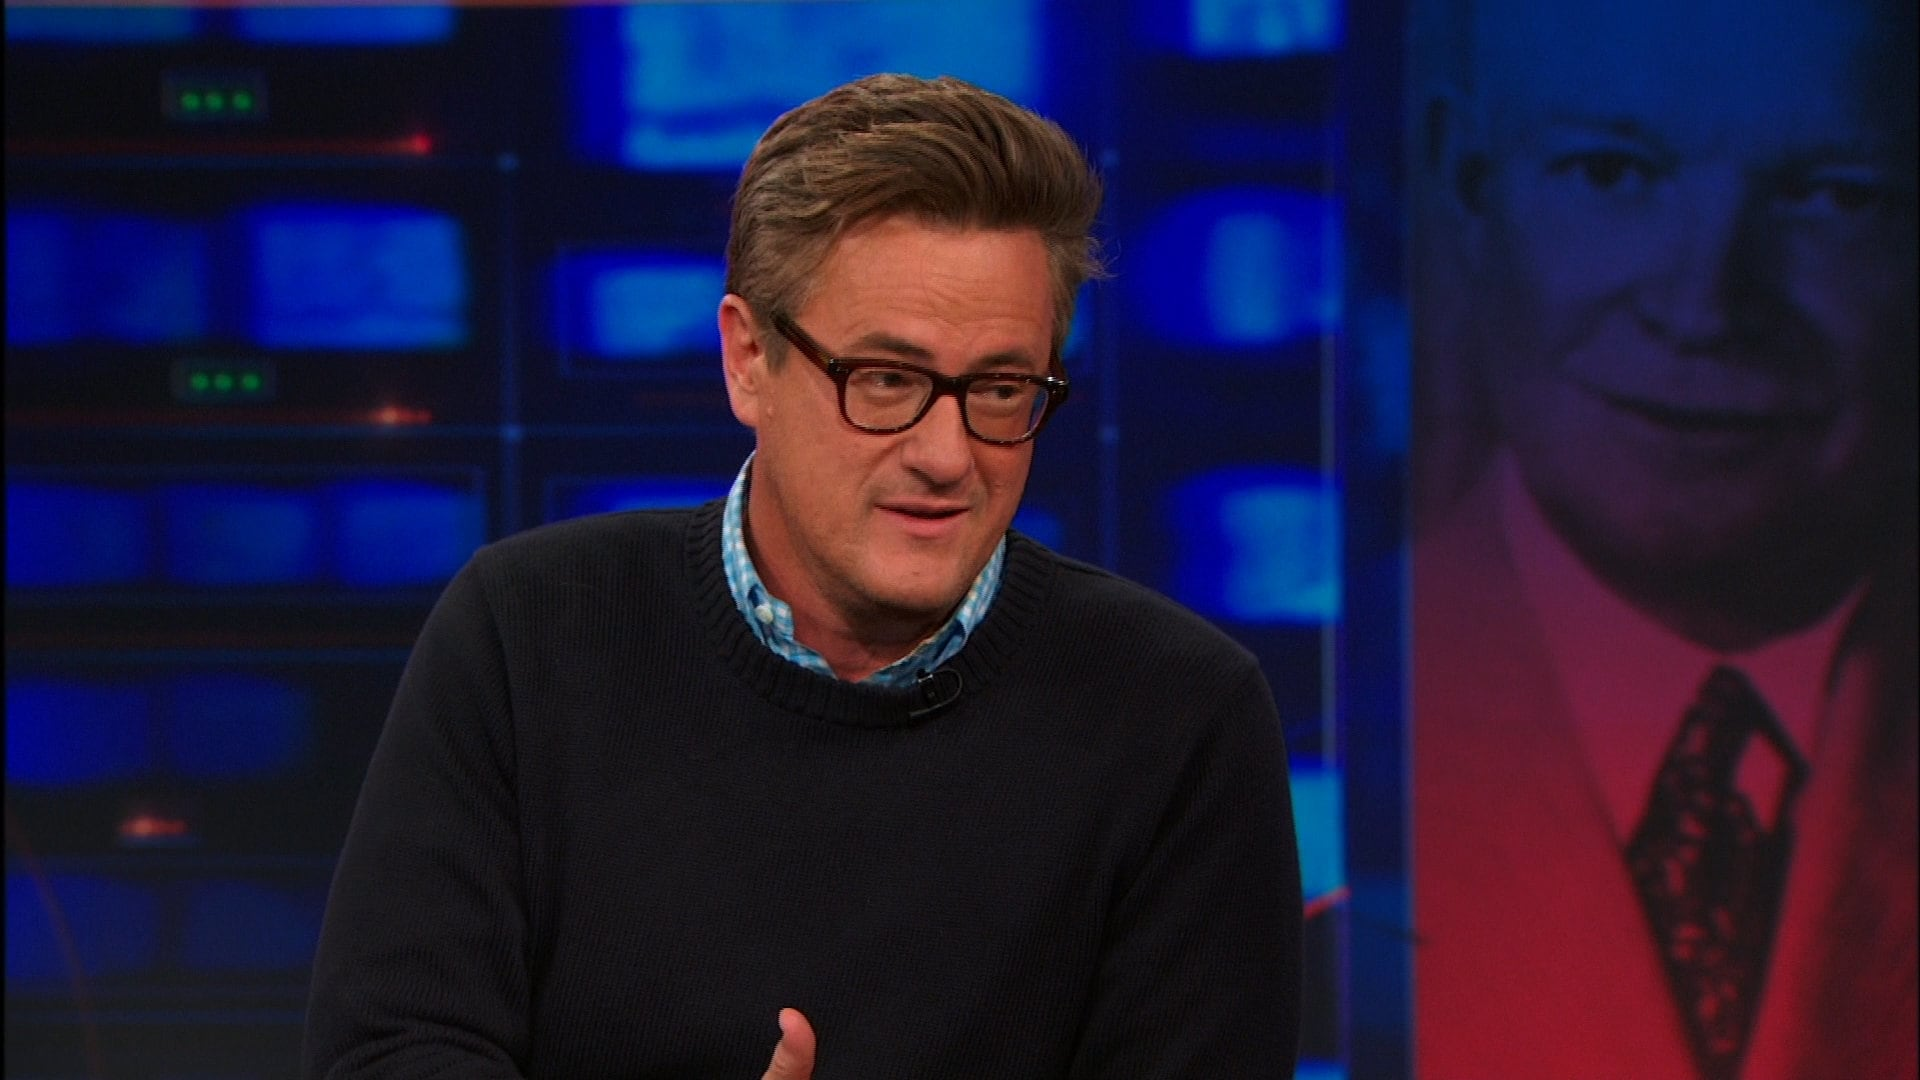 The Daily Show with Trevor Noah Season 19 :Episode 22  Joe Scarborough